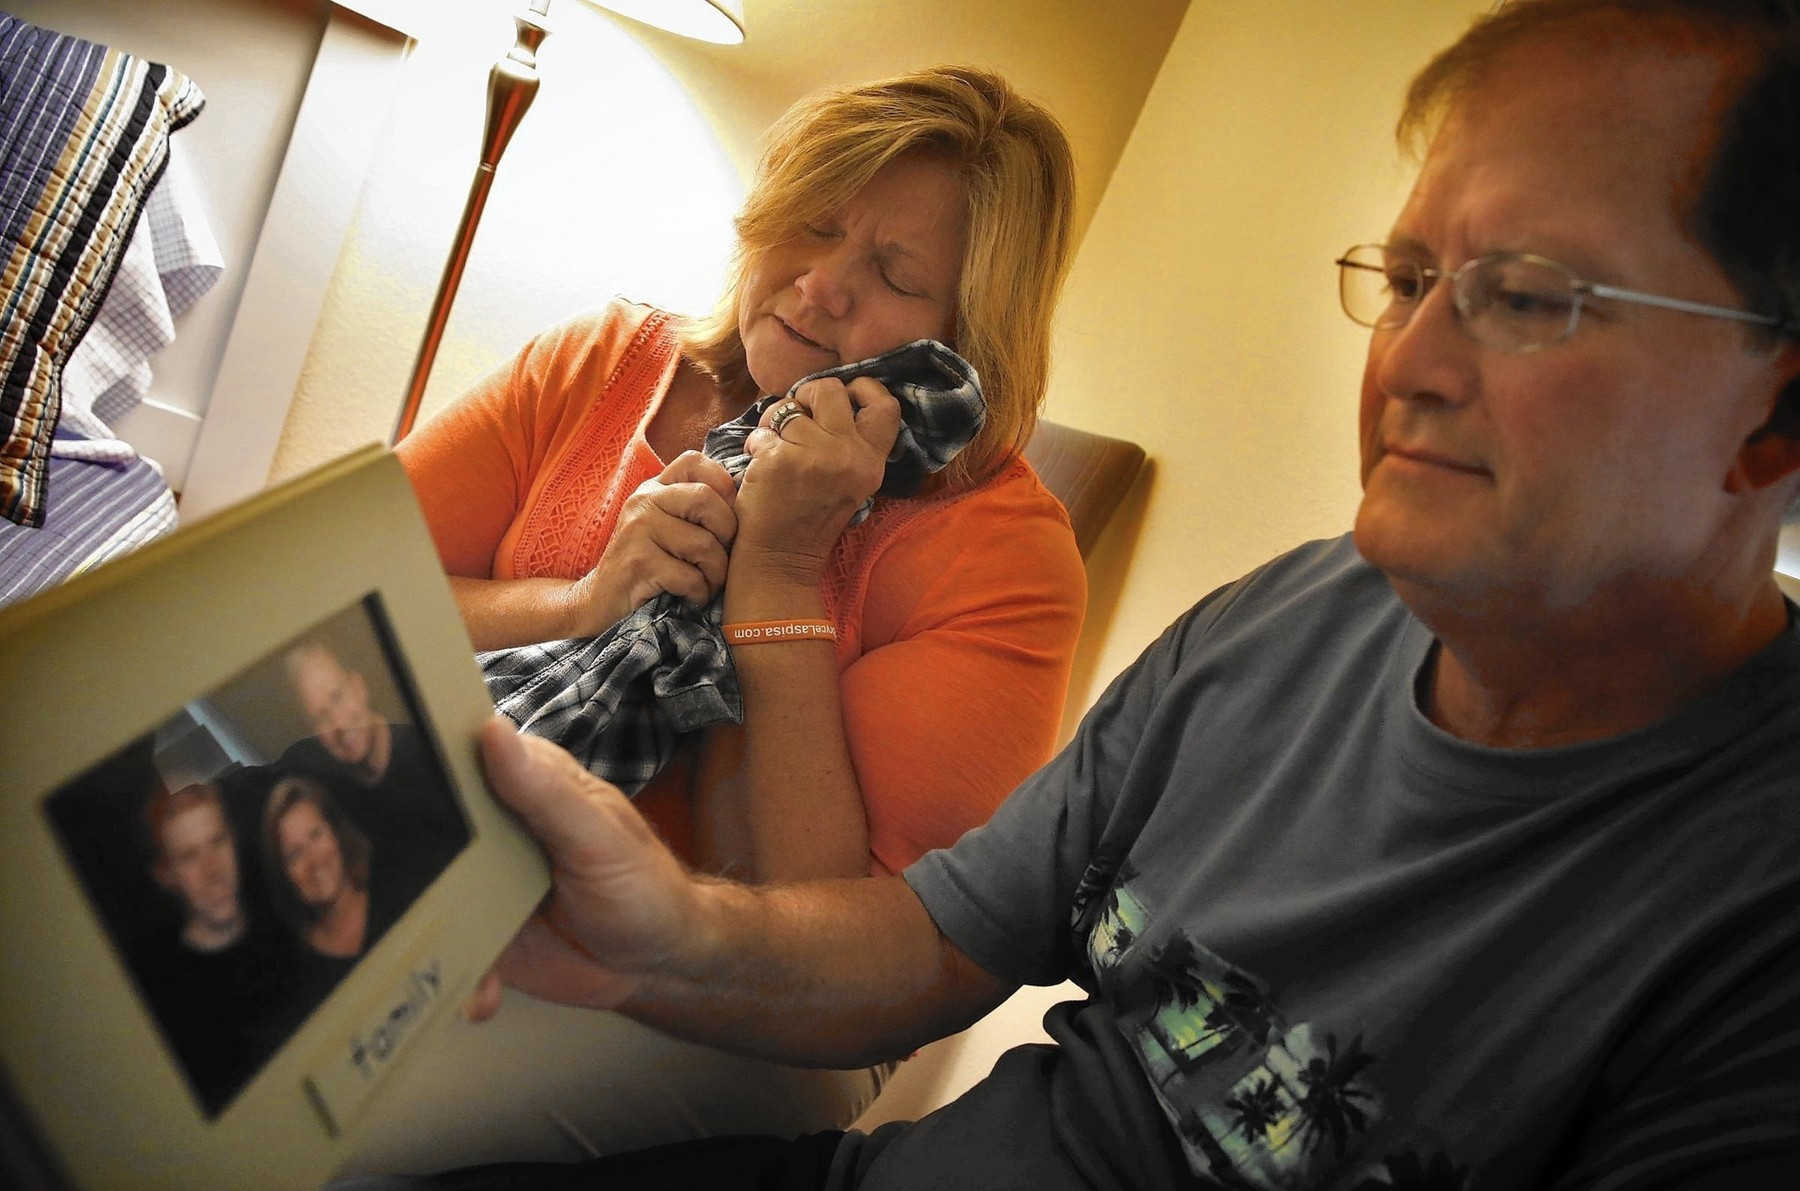 Michael and Karen Laspisa hold a photograph of their missing son Bryce Laspisa in 2015. Photo courtesy of Chicago Tribune.